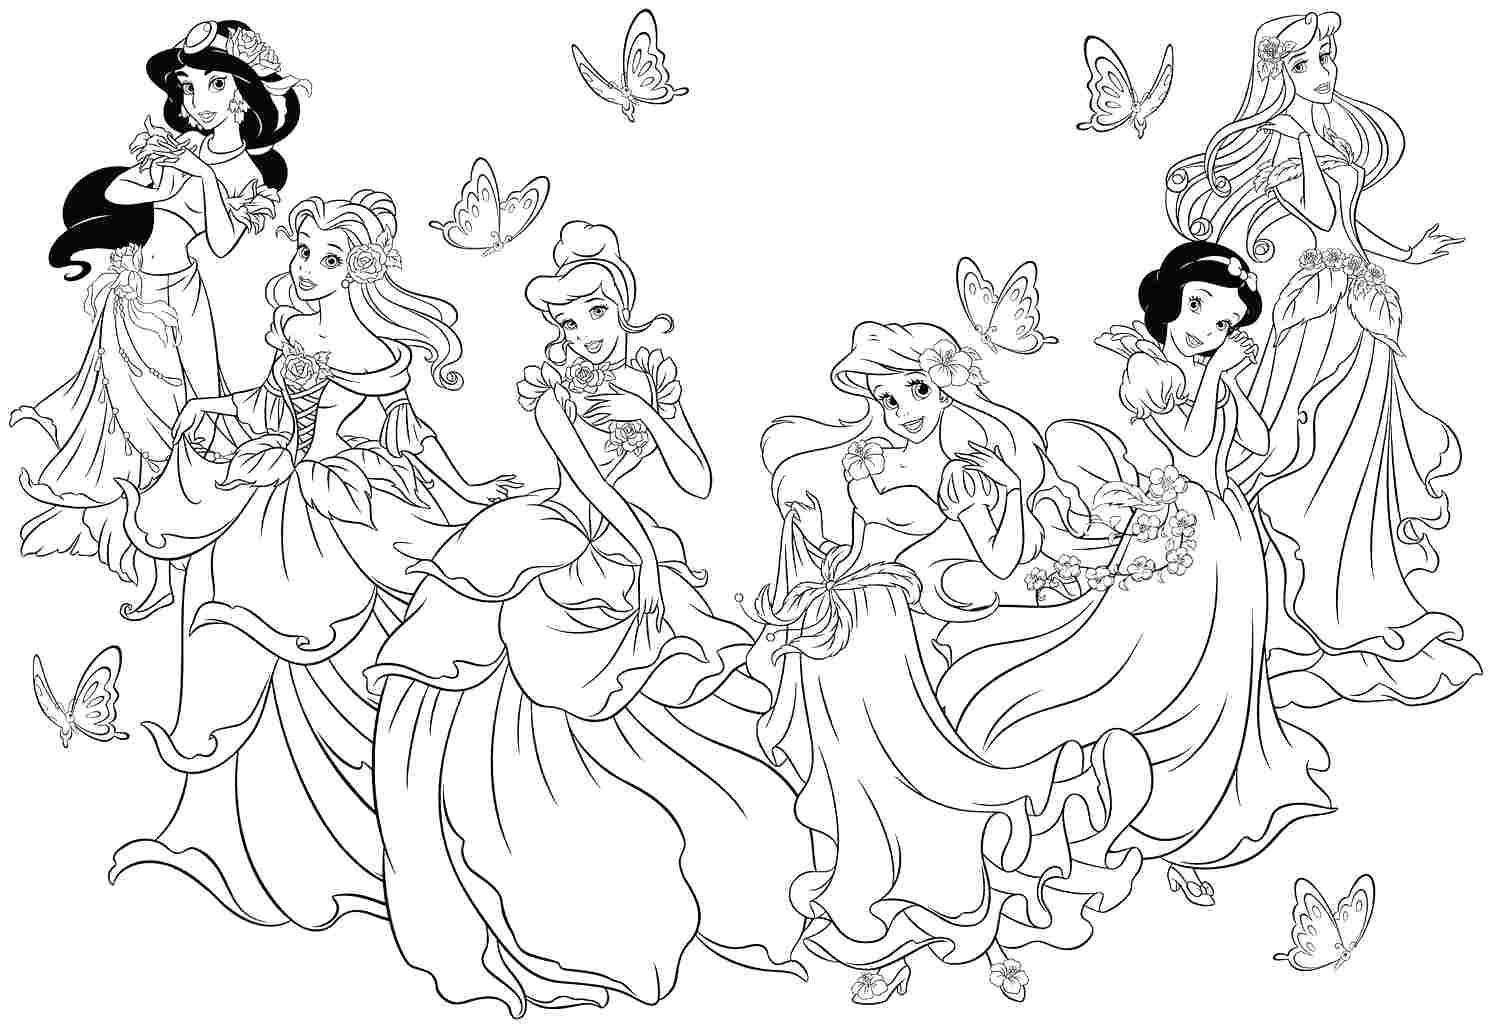 Printable Princess Coloring Pages - Hwnsurf - Free Printable Princess Coloring Pages